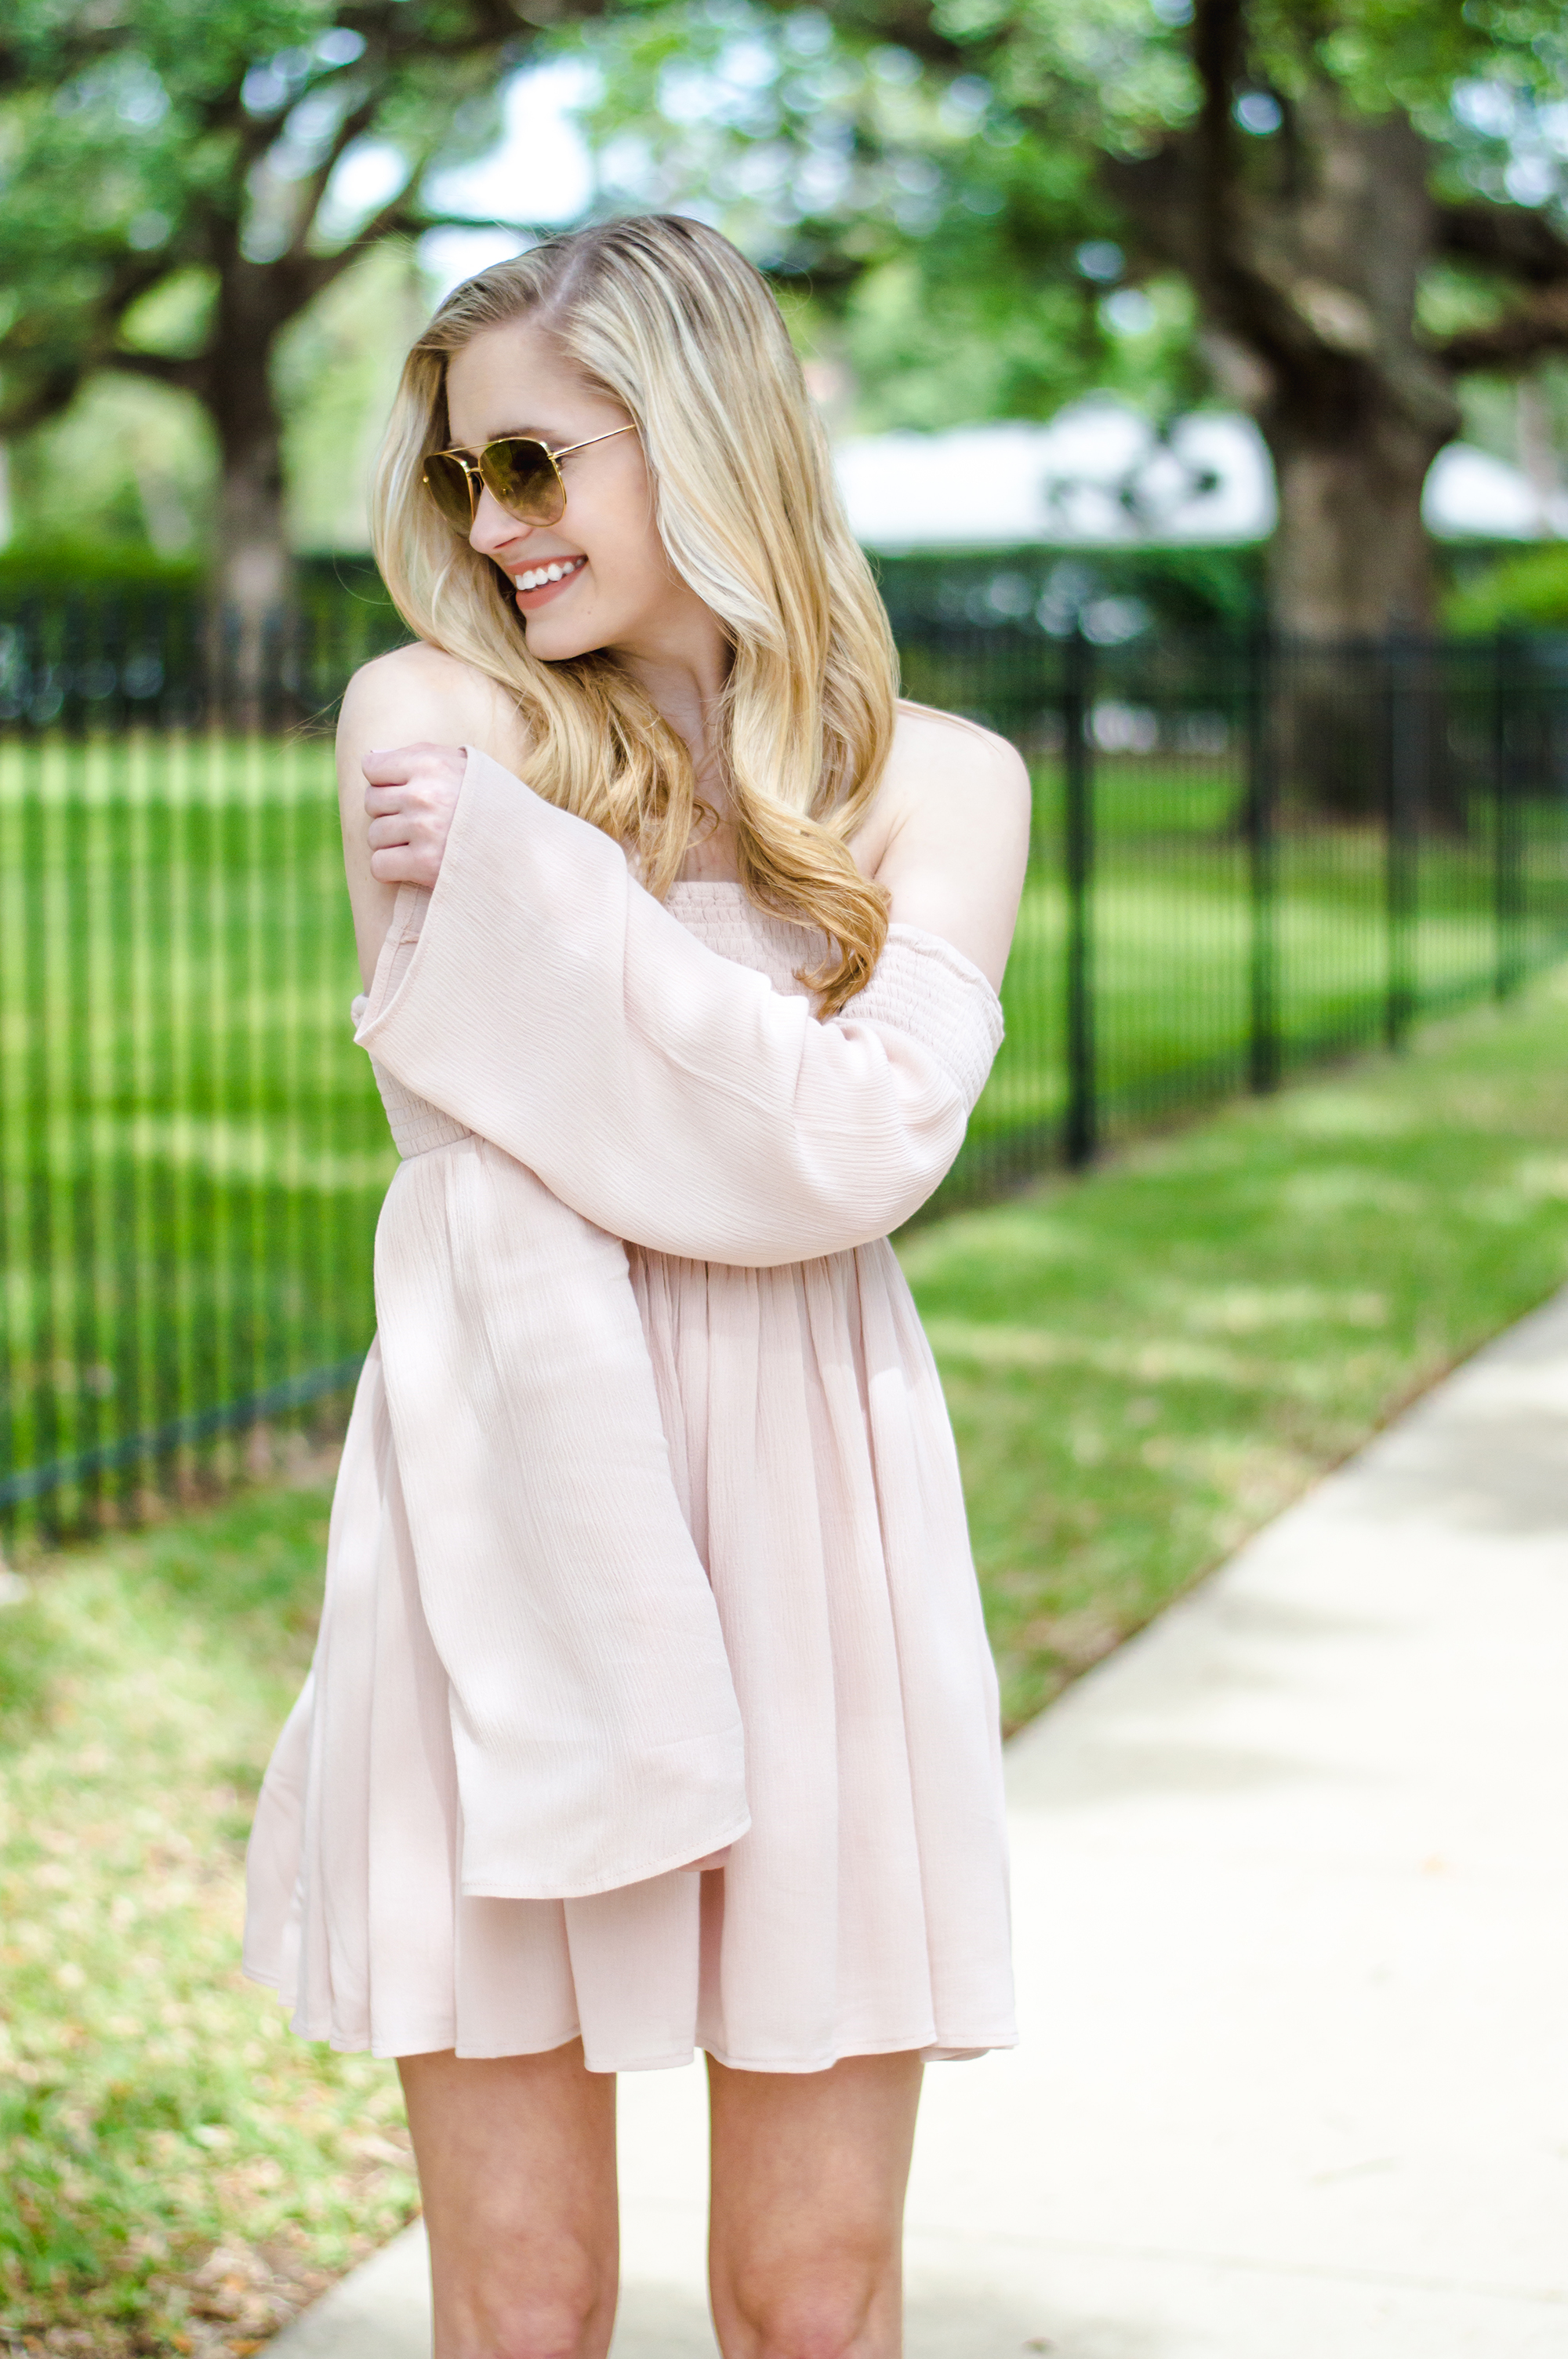 styelled-blog-elle-elisabeth-fashion-style-blogger-florida-tobi-clothing-sundress-blush-dress-burberry-sunglasses-aviator-dolce-vita-10